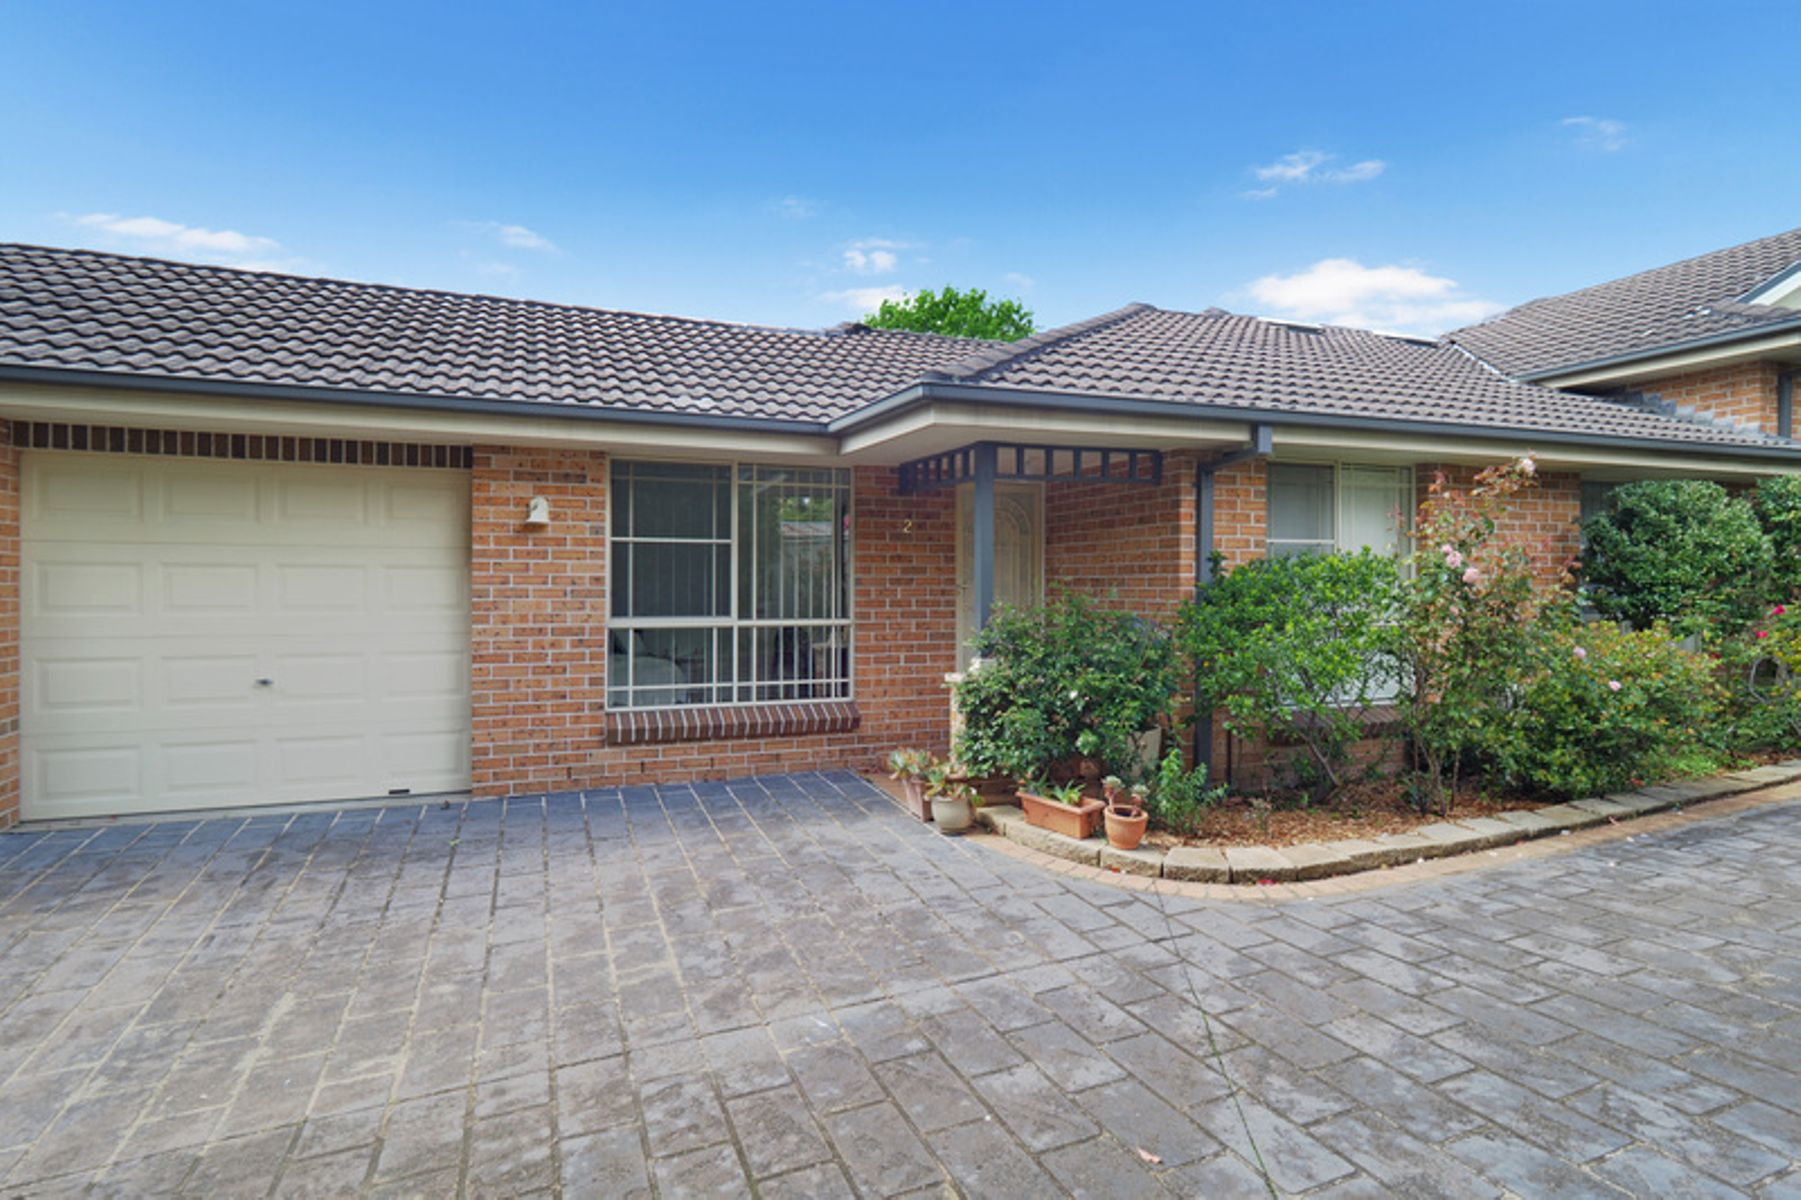 2/428 Blaxland Road, Denistone, NSW 2114